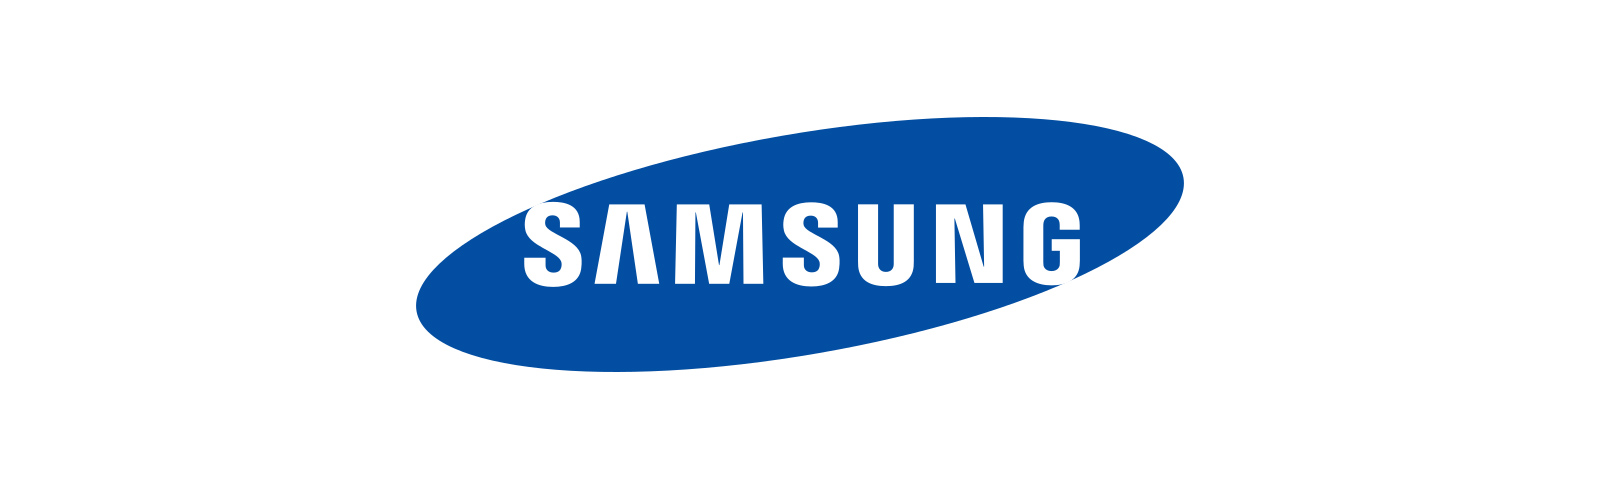 Samsung improves the luminous efficiency and usage time of QLED devices